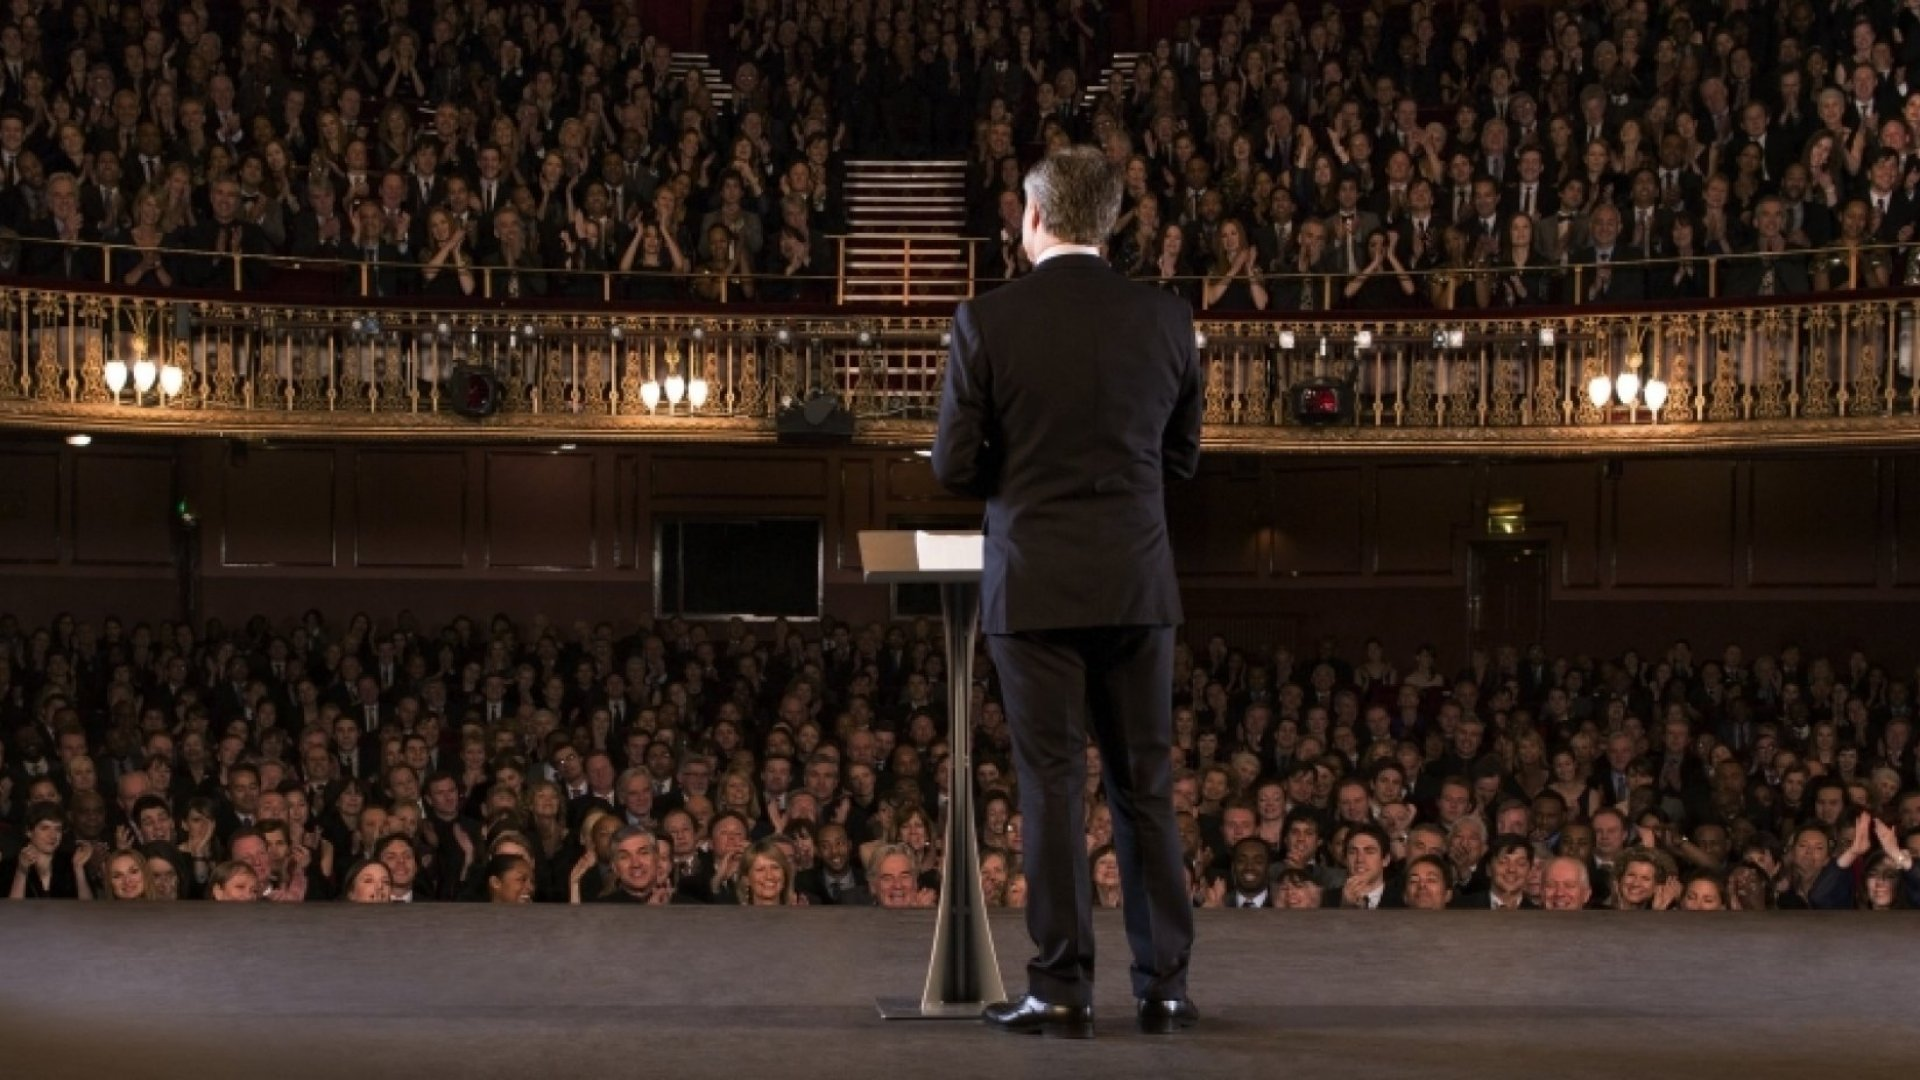 25 Tips to Become a Better Public Speaker